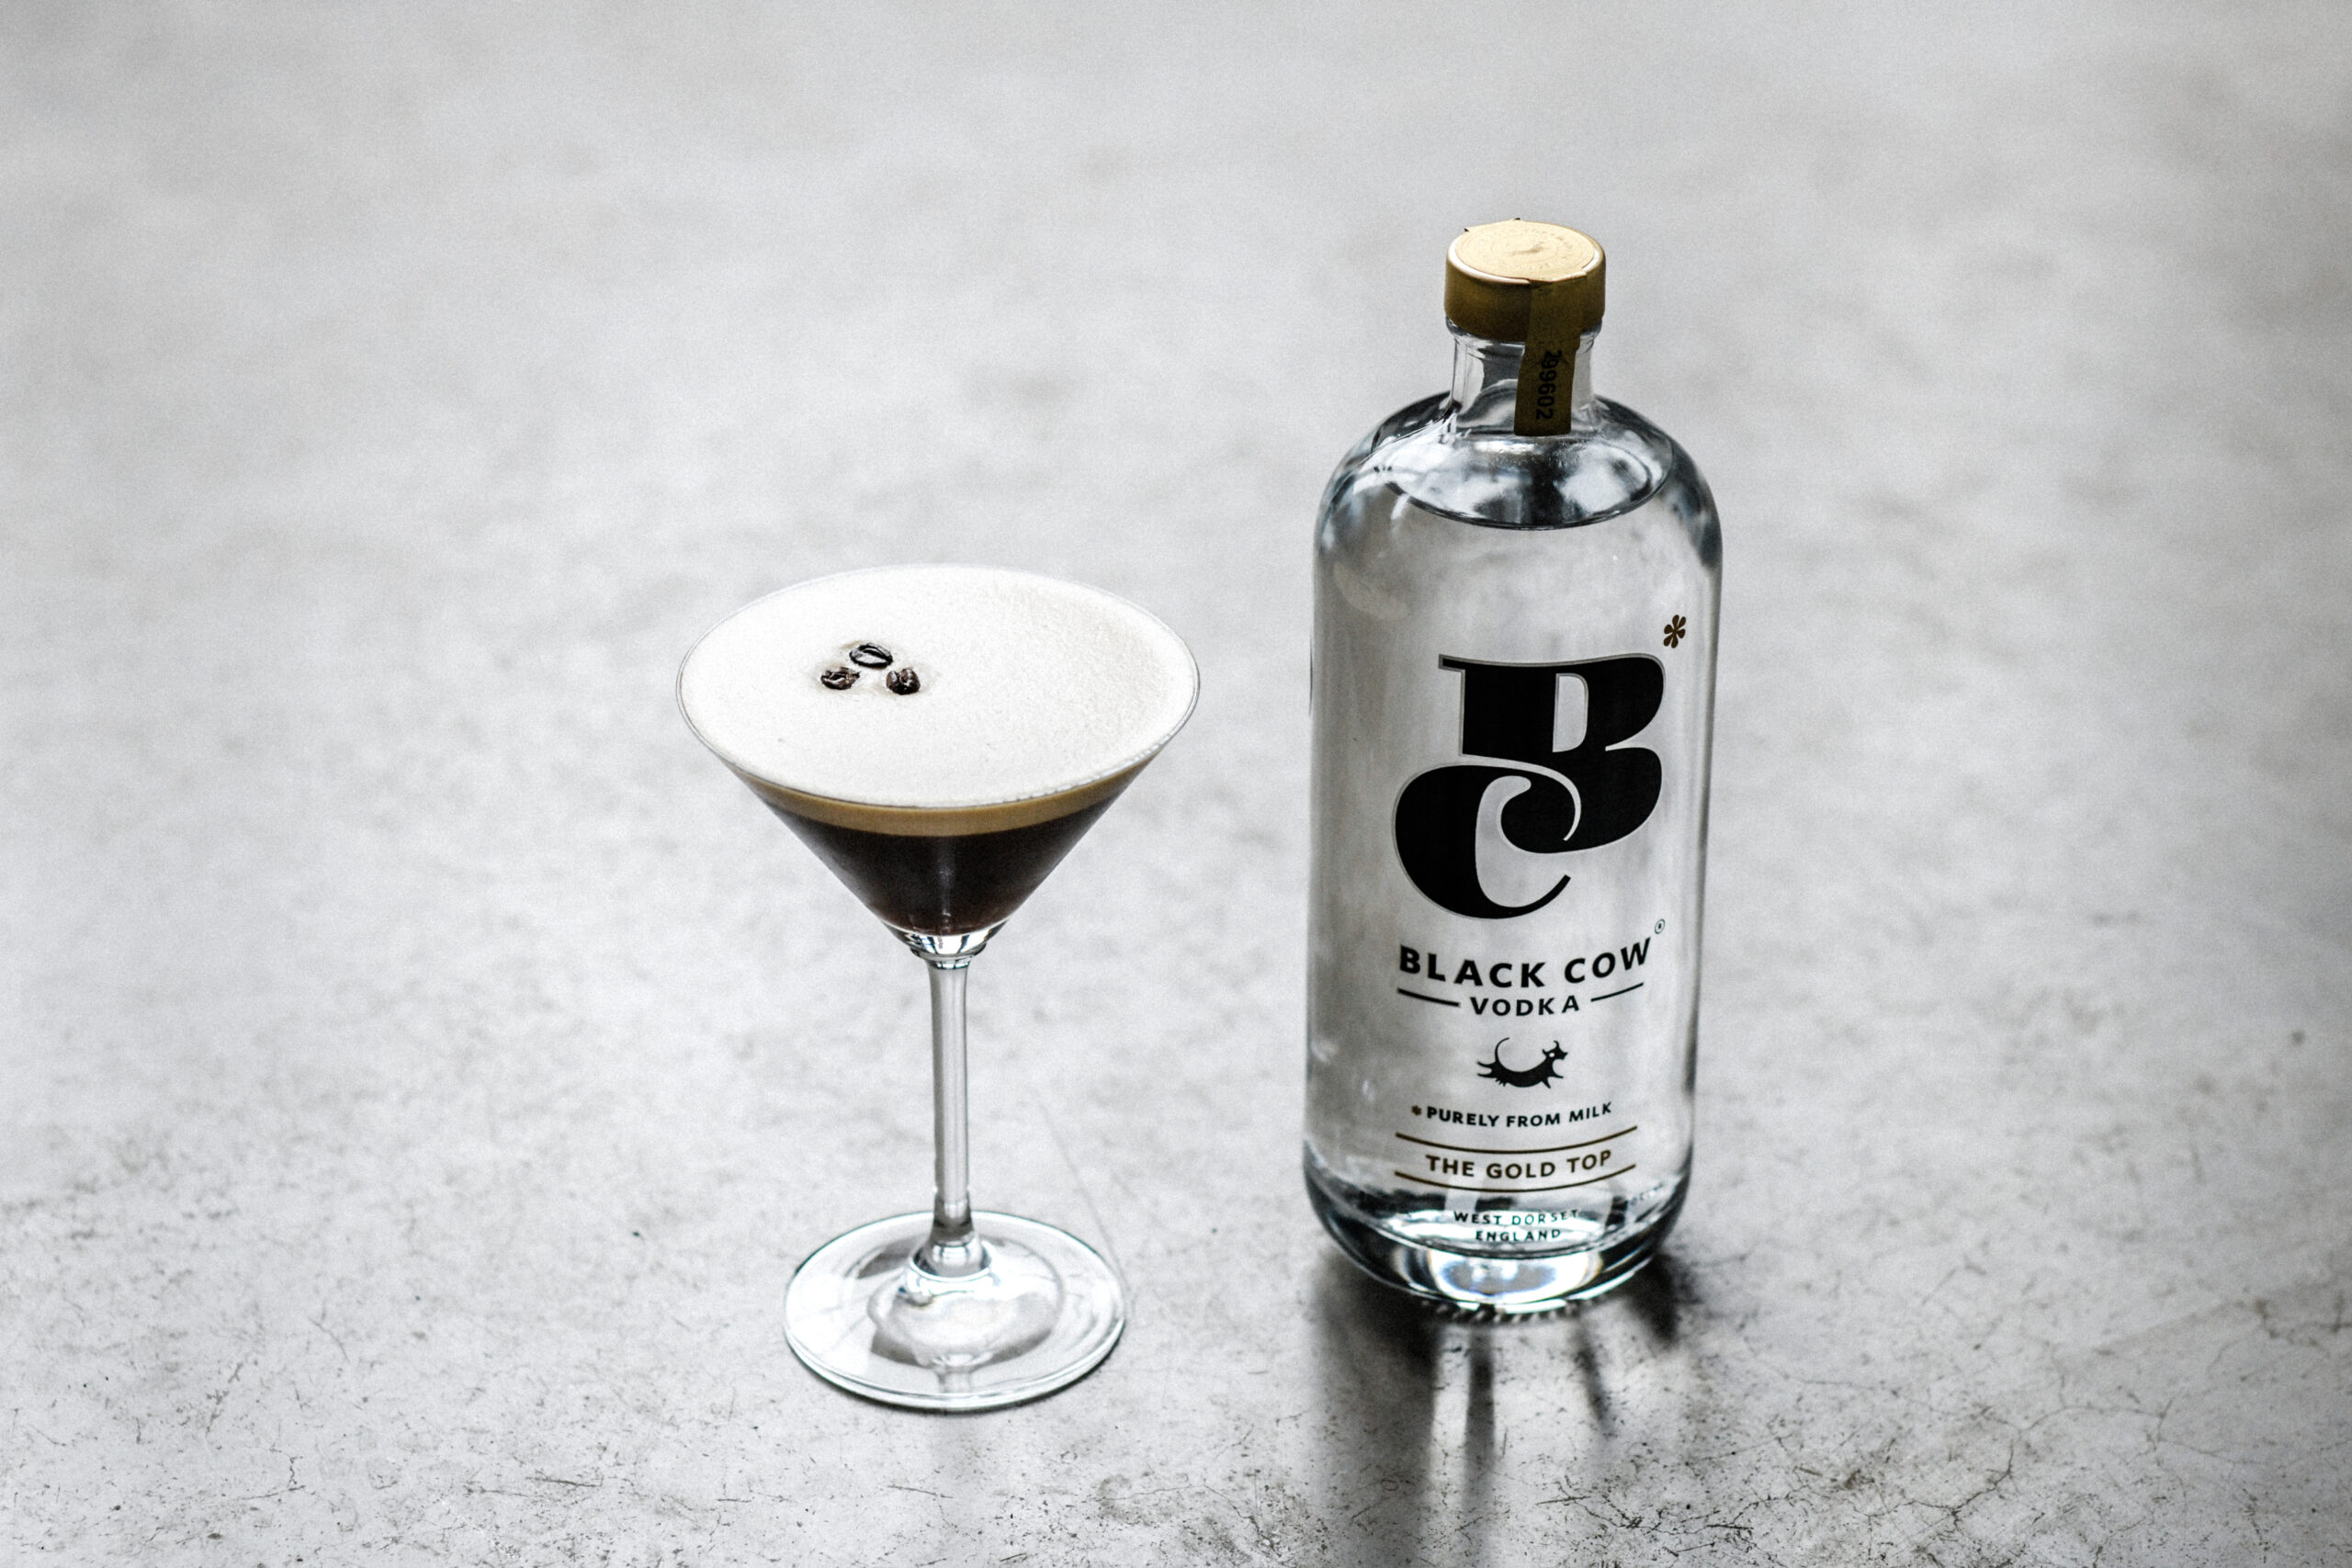 The Luxe List July 2020 - Black Cow Vodka's Express Martini Pop-Up Bar at the Tom Dixon Coal Office Restaurant (Photo Credit: Matt Austin)